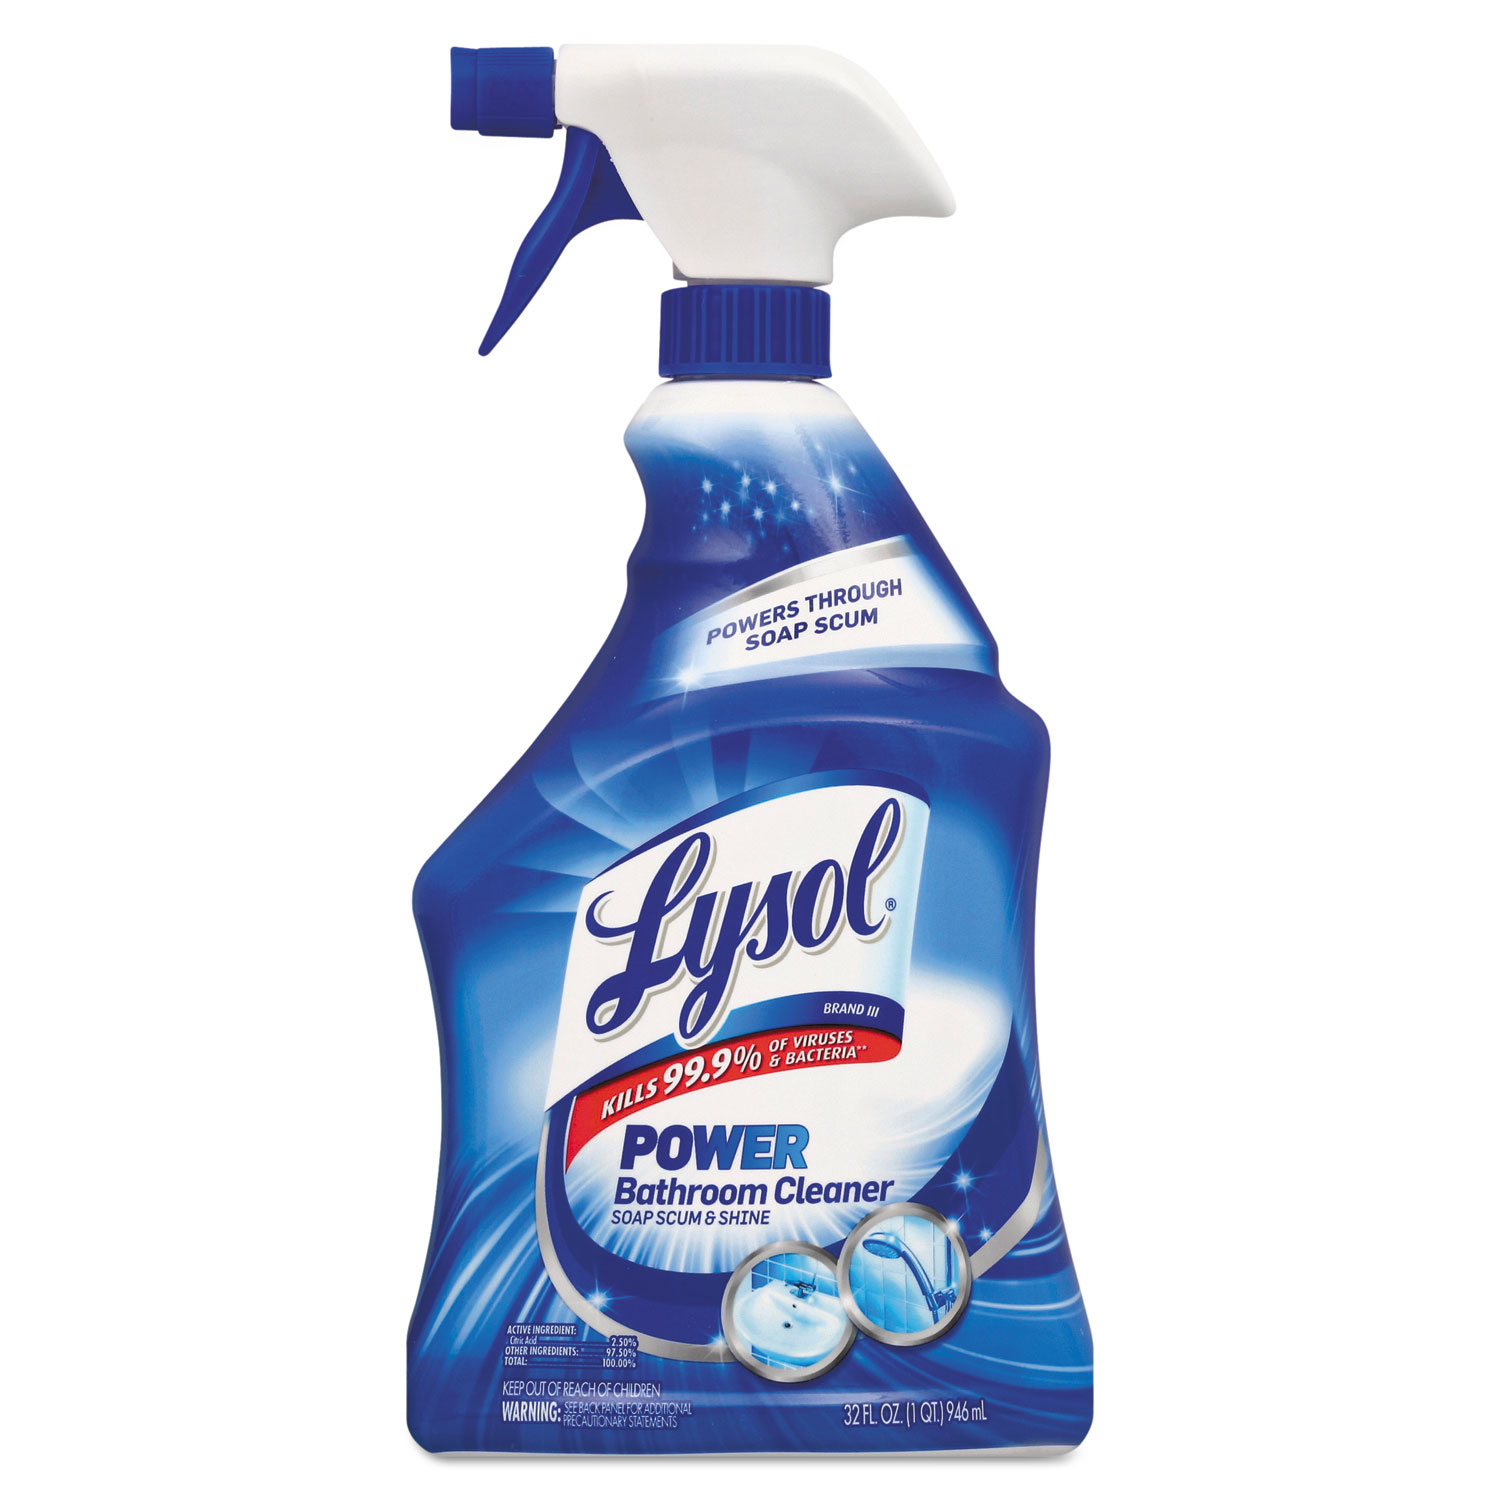 Disinfectant Bathroom Cleaners By Lysol 174 Brand Rac02699ct